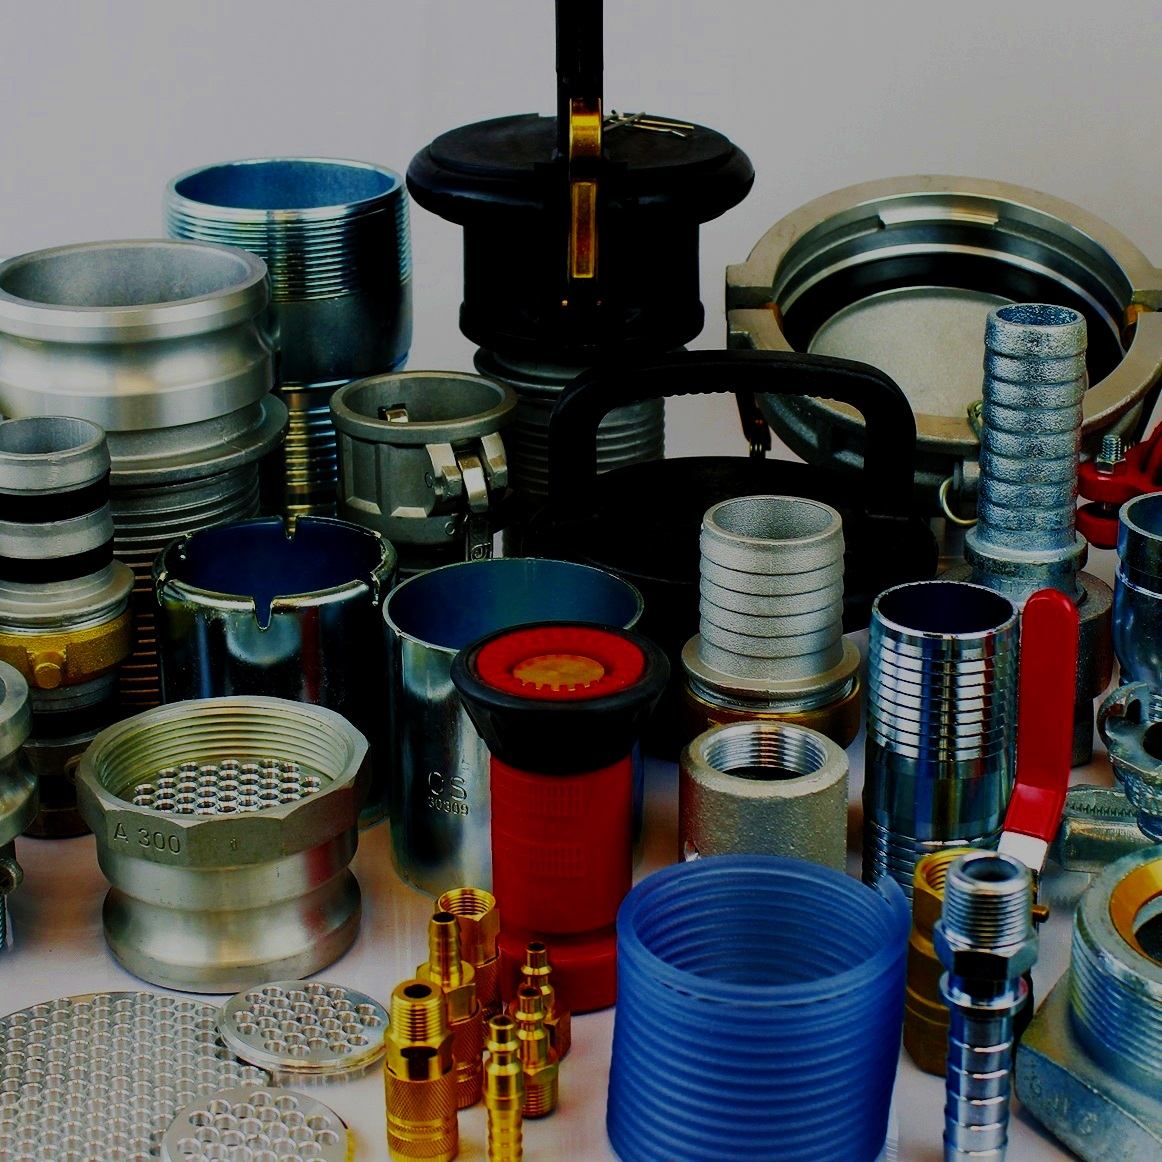 COUPLINGS& ACCESSORIES - Camlock / Cam & Groove FittingsPin-Lug / Suction Hose CouplingsCombination NipplesGround JointsSanitary / Triclamp FittingsAdapters for Camlock, Pipe Fittings, & HydraulicsAir FittingsBrass FittingsGarden Hose FittingsHydrant / Fire Hose AdaptersHose ClampsSuction StrainersHose Coupling Gaskets